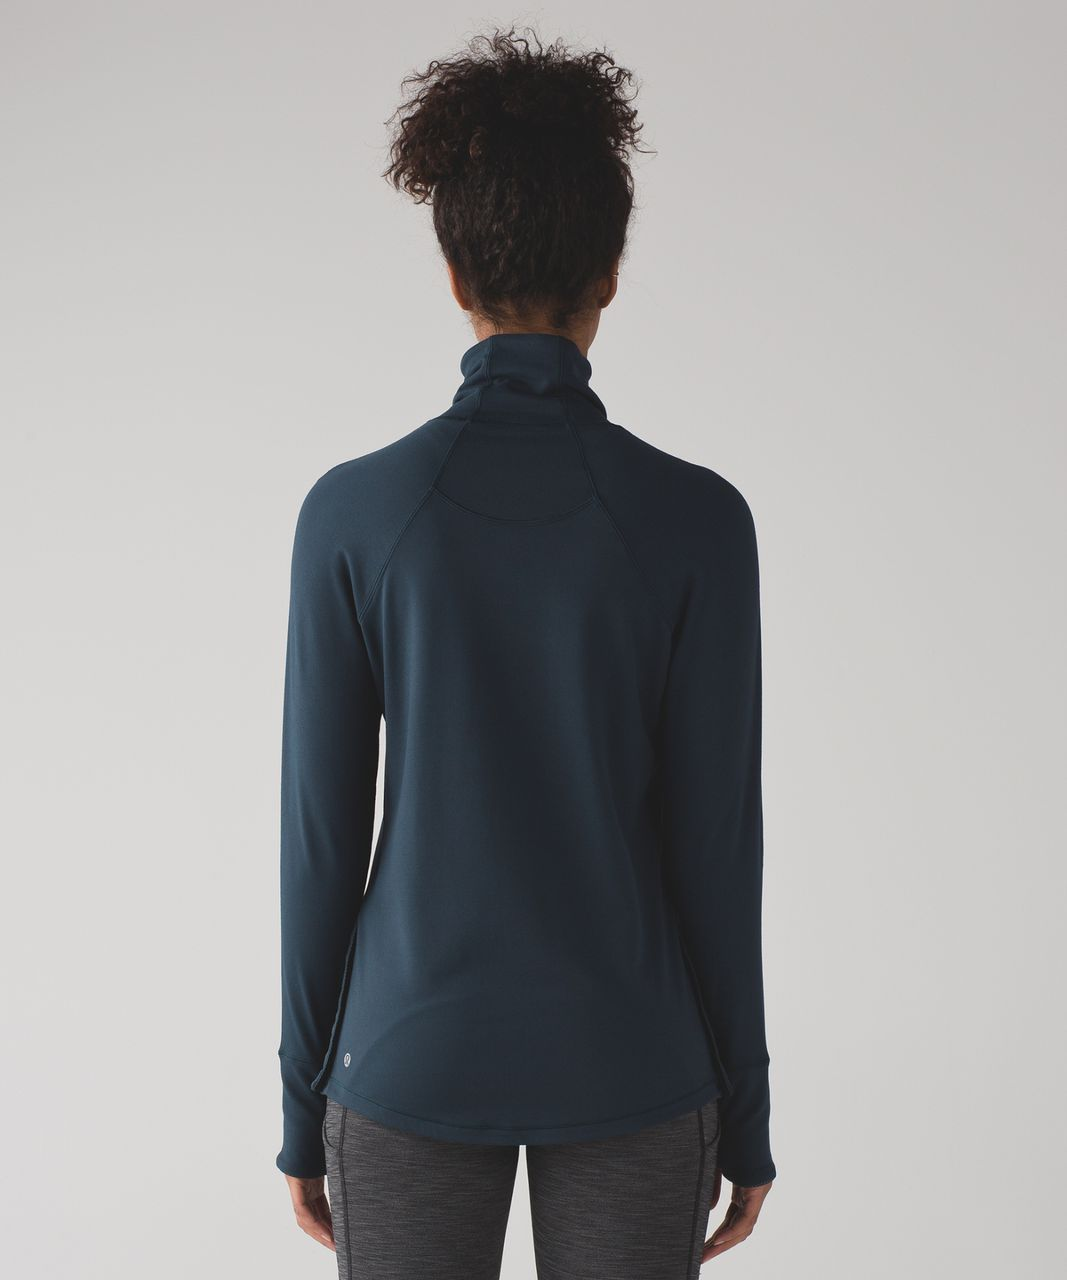 Lululemon Hill And Valley Turtleneck - Nocturnal Teal